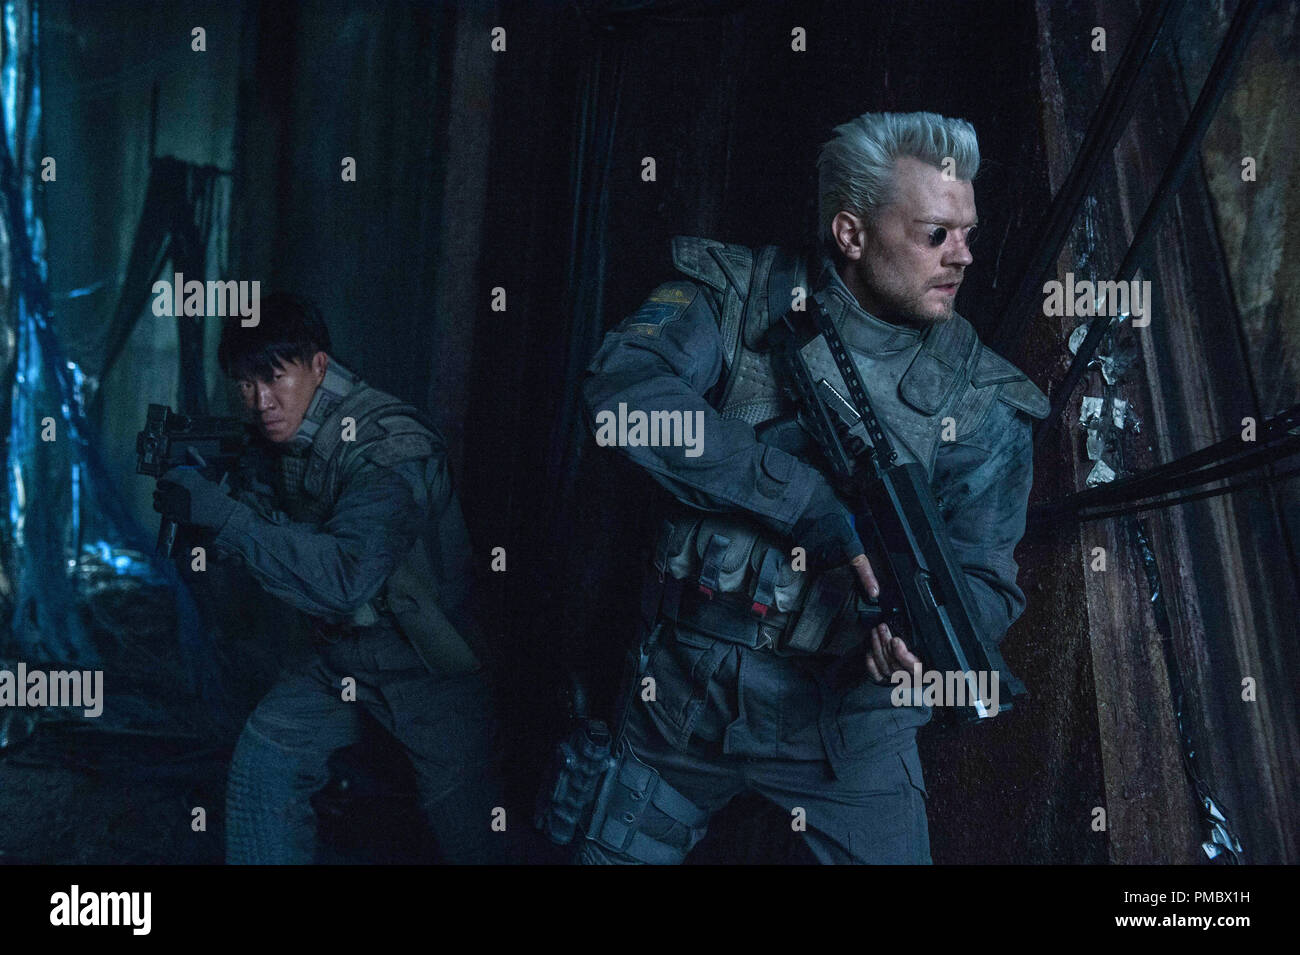 Chin Han Plays Togusa And Pilou Asbaek Plays Batou In Ghost In The Shell From Paramount Pictures And Dreamworks Pictures 2017 Stock Photo Alamy